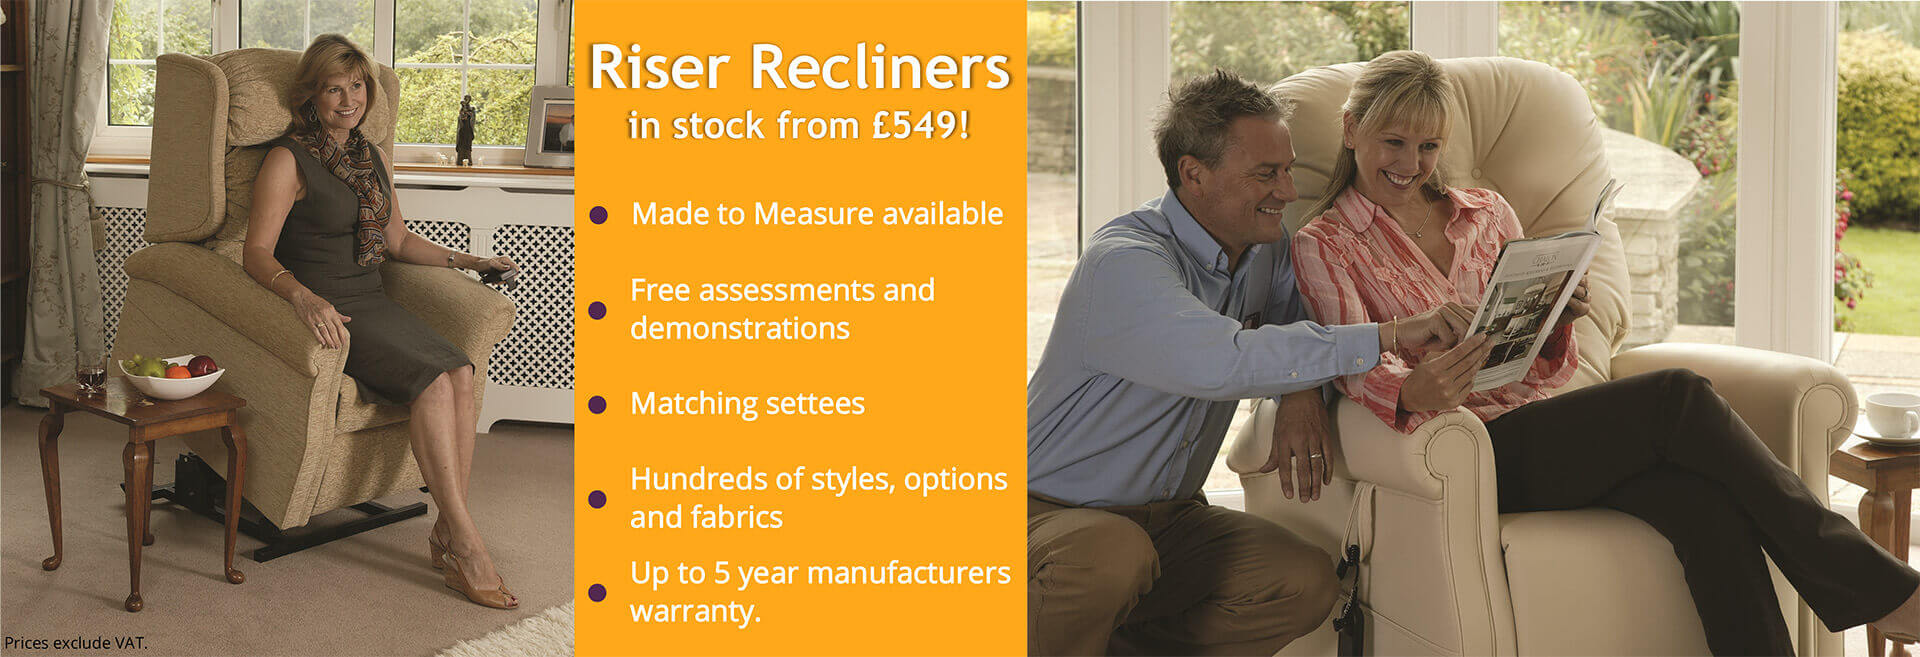 Riser Recliners in Market Harborough